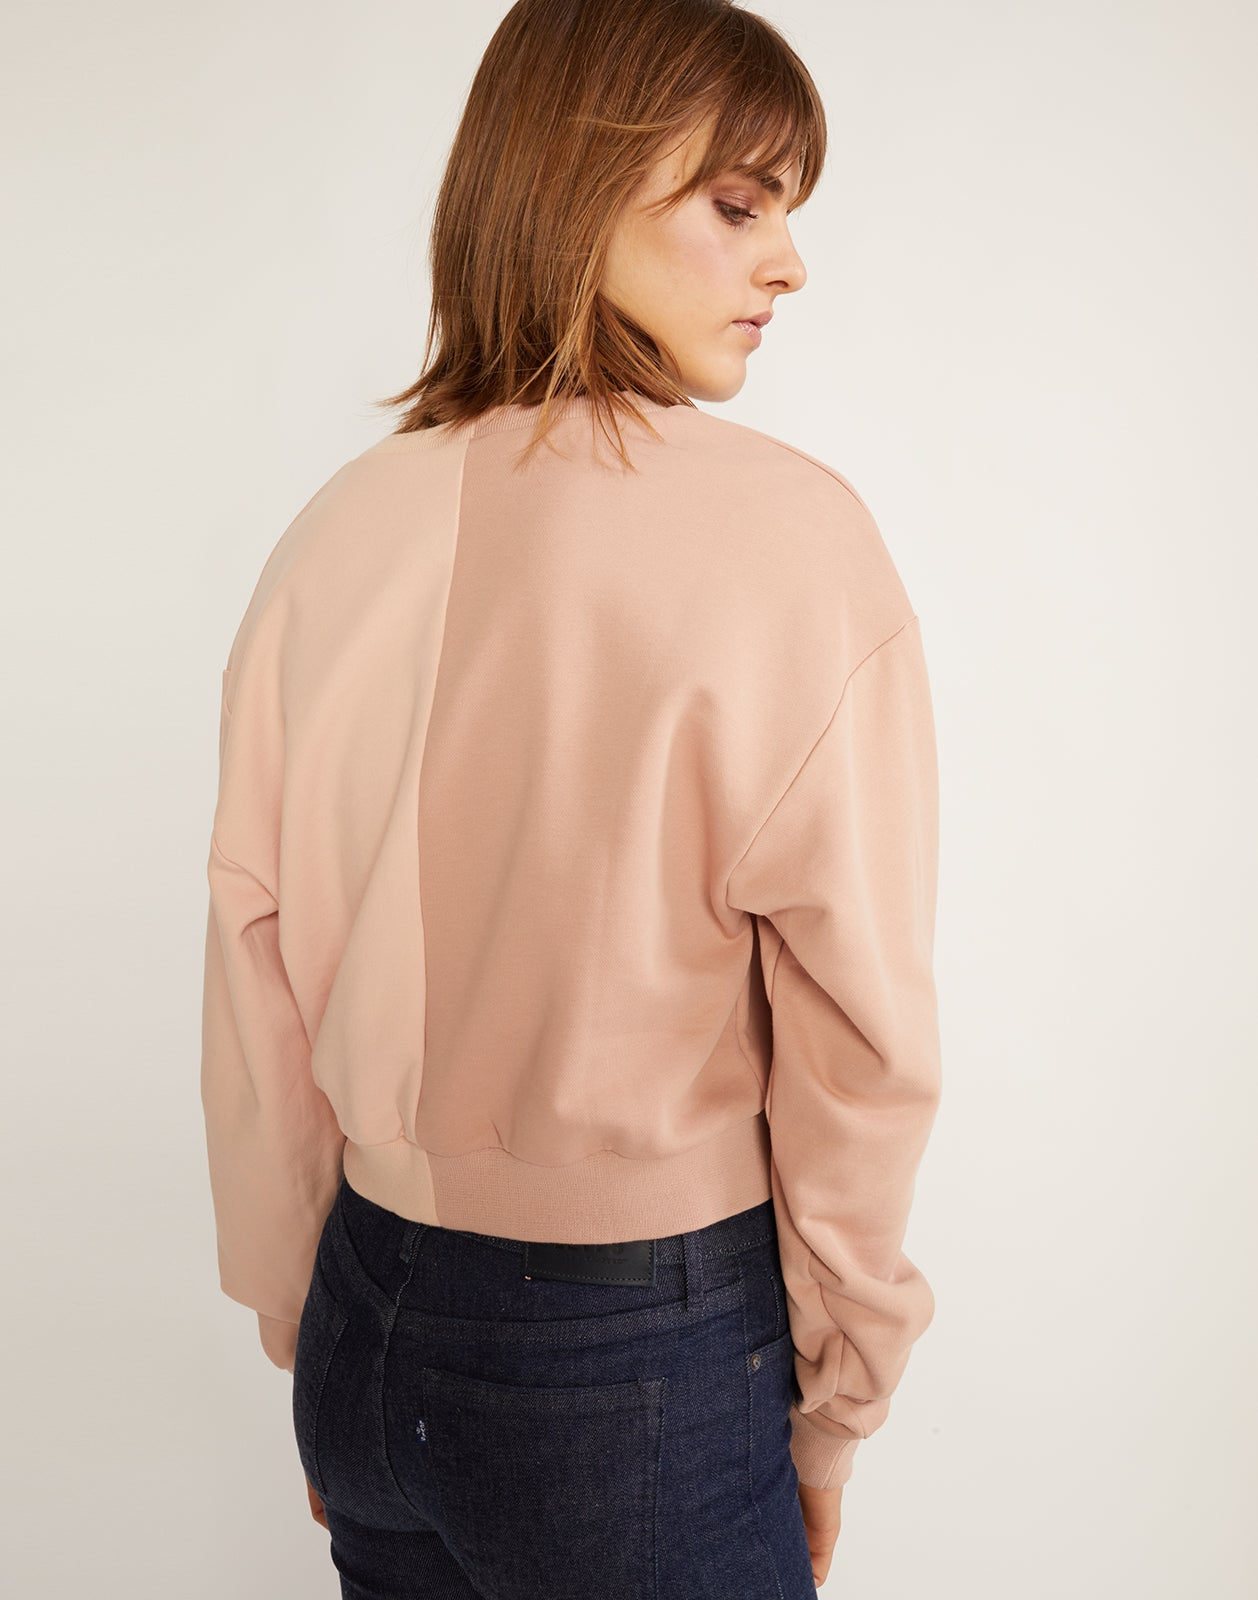 Back view of the half beige, half pink caliyork cropped sweatshirt in soft cotton.